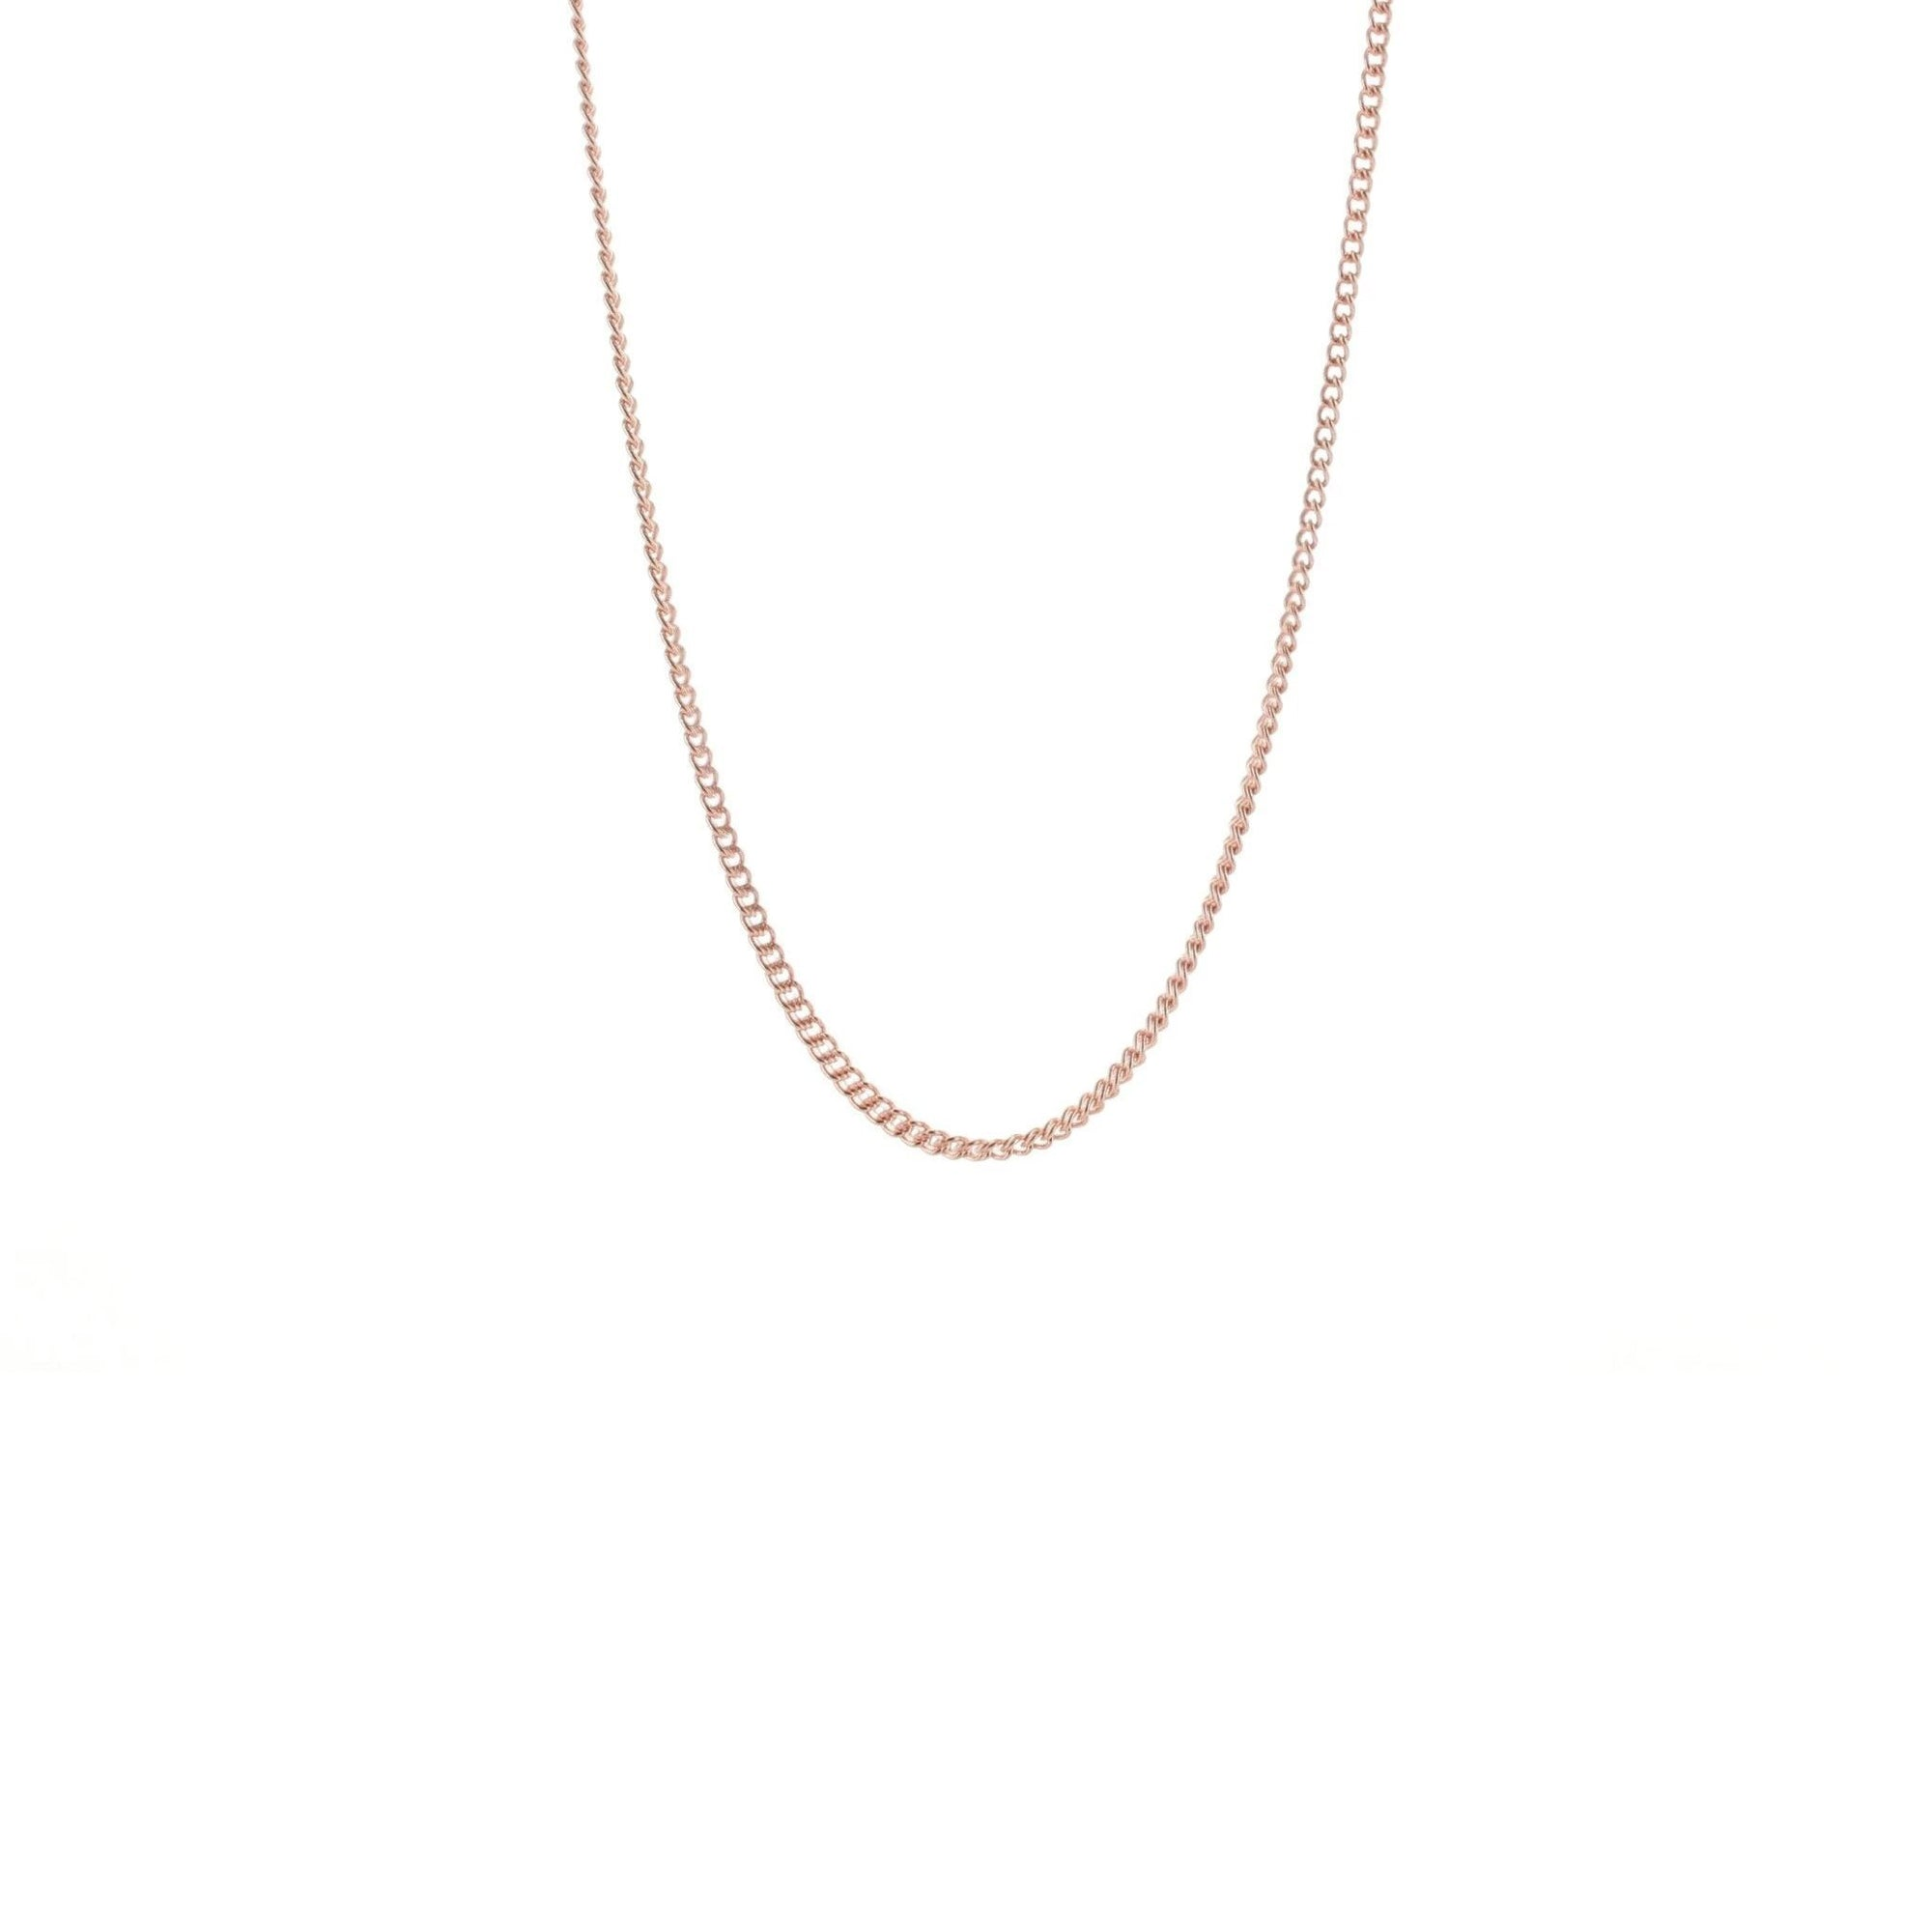 "CHARMING 18-20"" NECKLACE ROSE GOLD - SO PRETTY CARA COTTER"